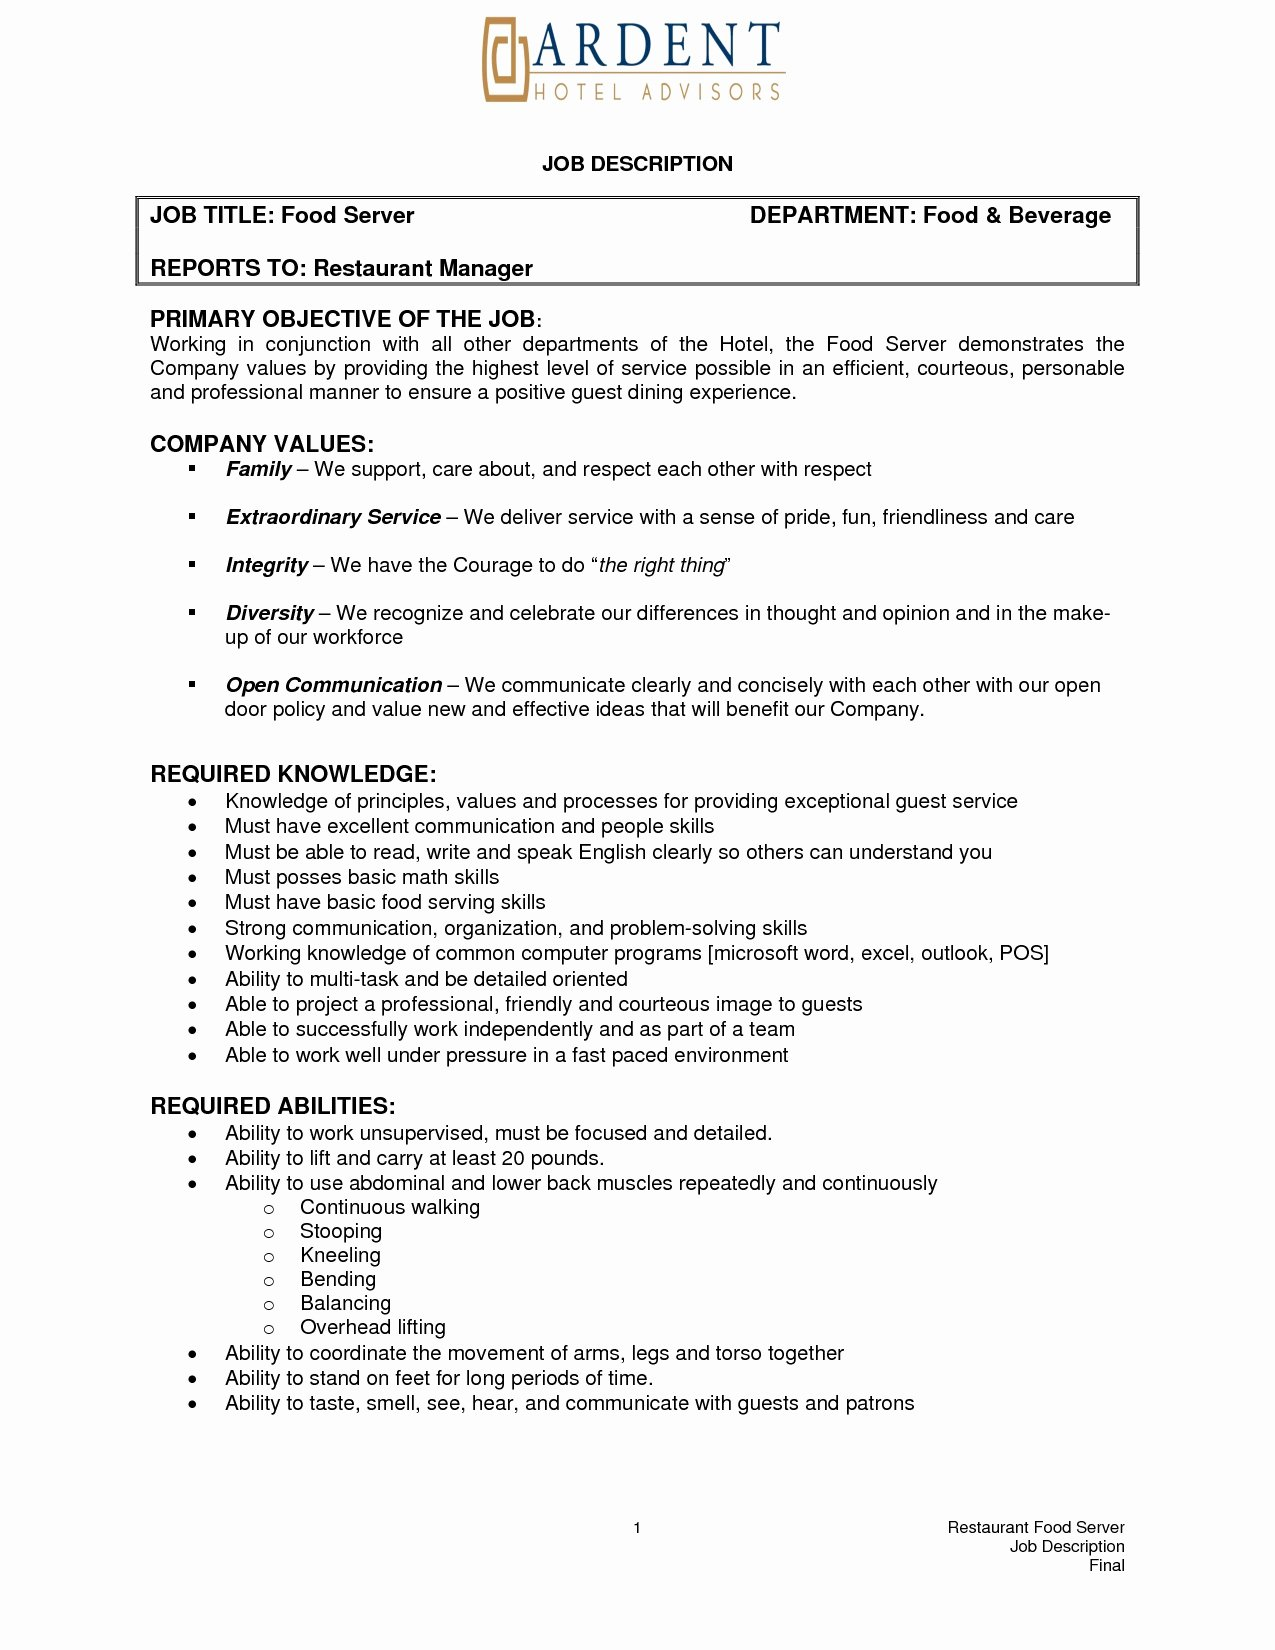 Resume for Food Server Job Duties List Example